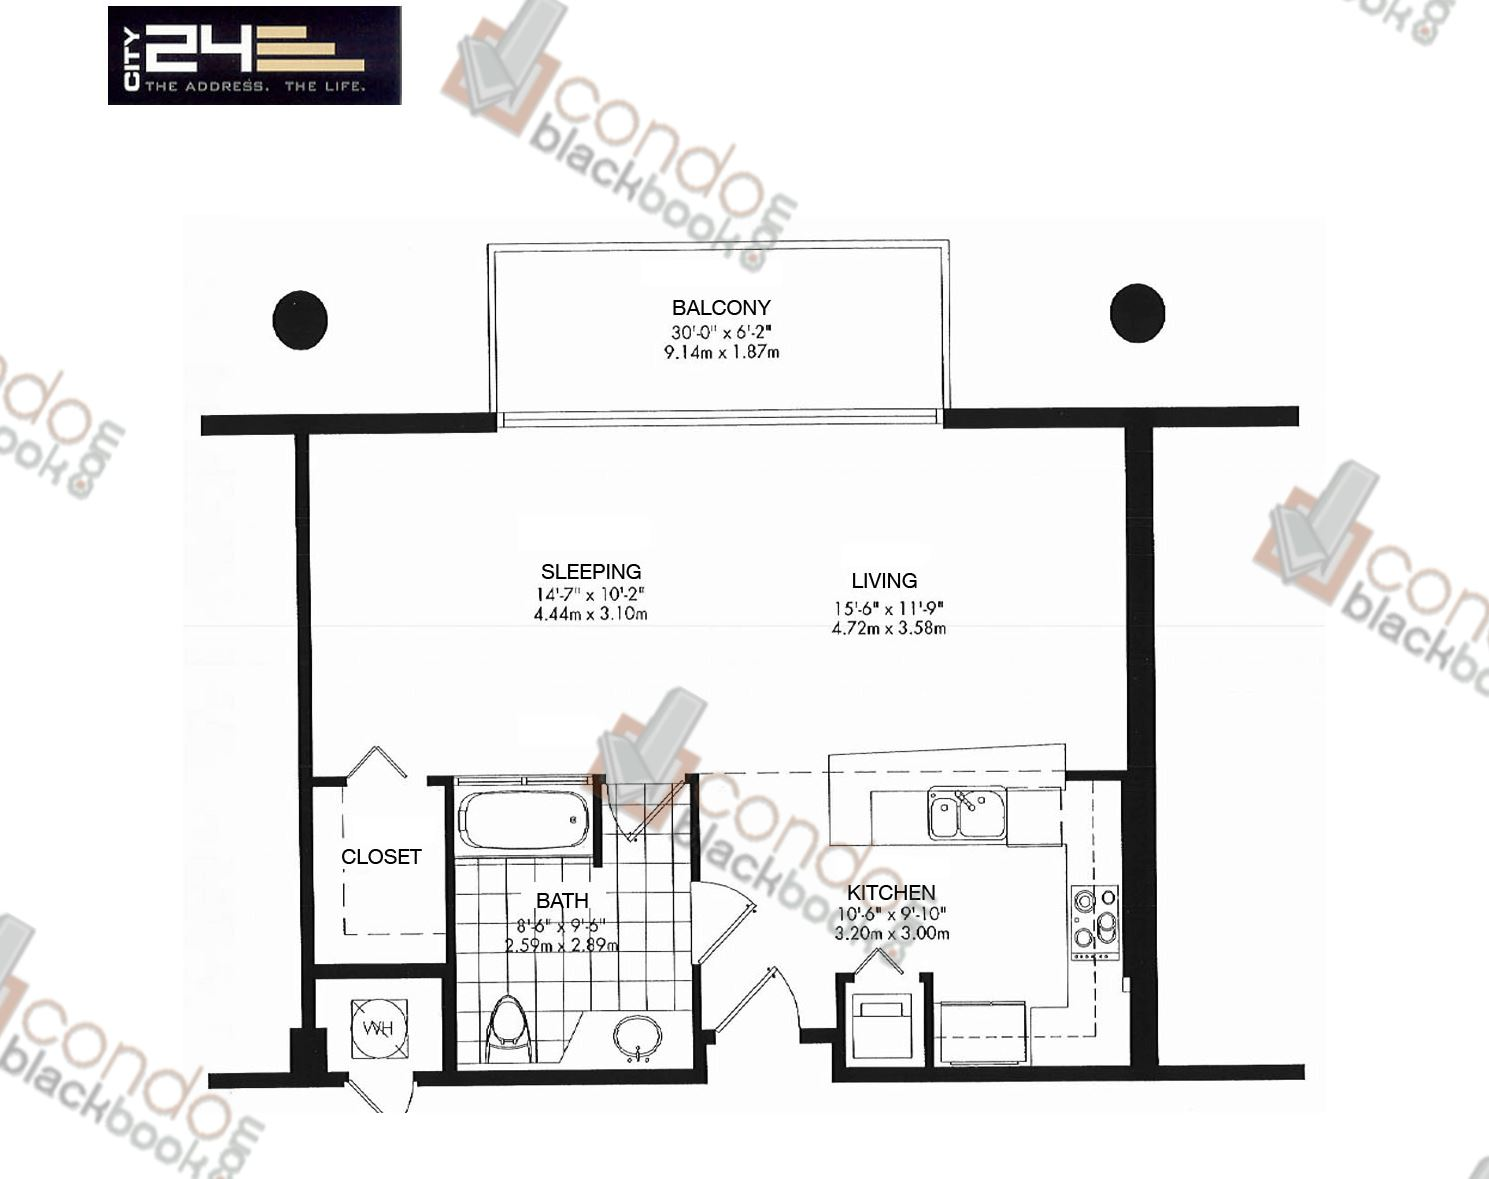 Floor plan for City 24 Edgewater Miami, model Unit A3, line 02,03,04,07,08,09, 1/1 bedrooms, 679 sq ft